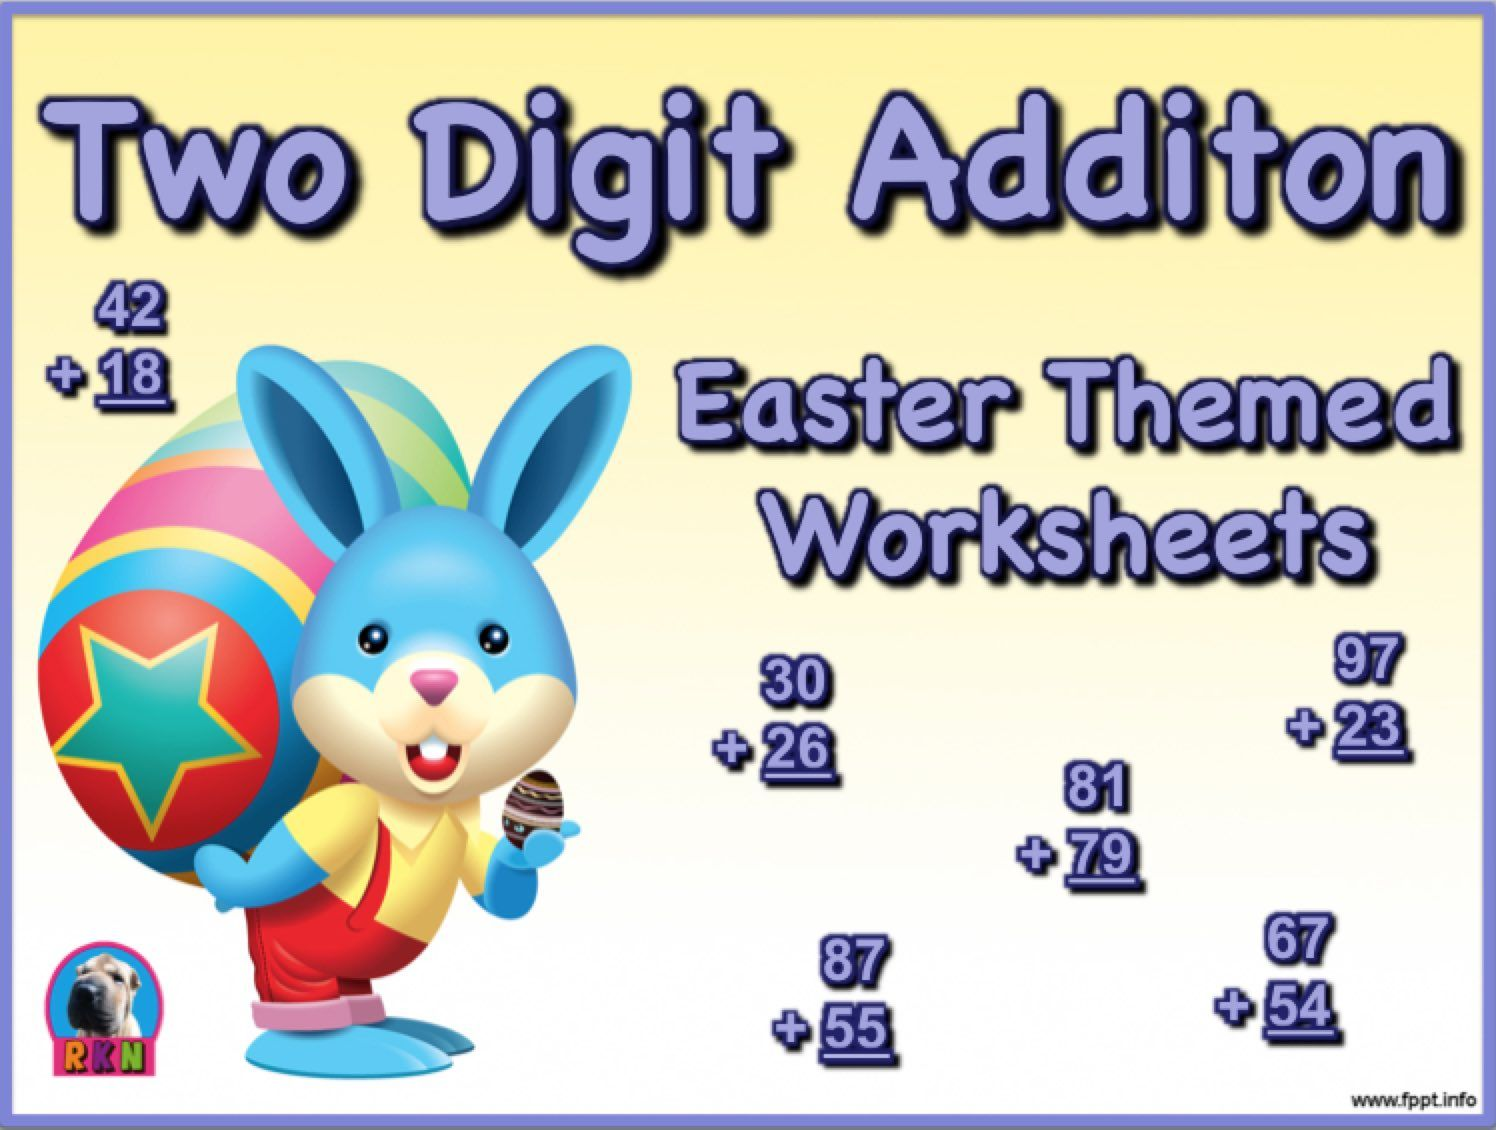 Two Digit Addition Easter Themed Worksheets Vertical Math